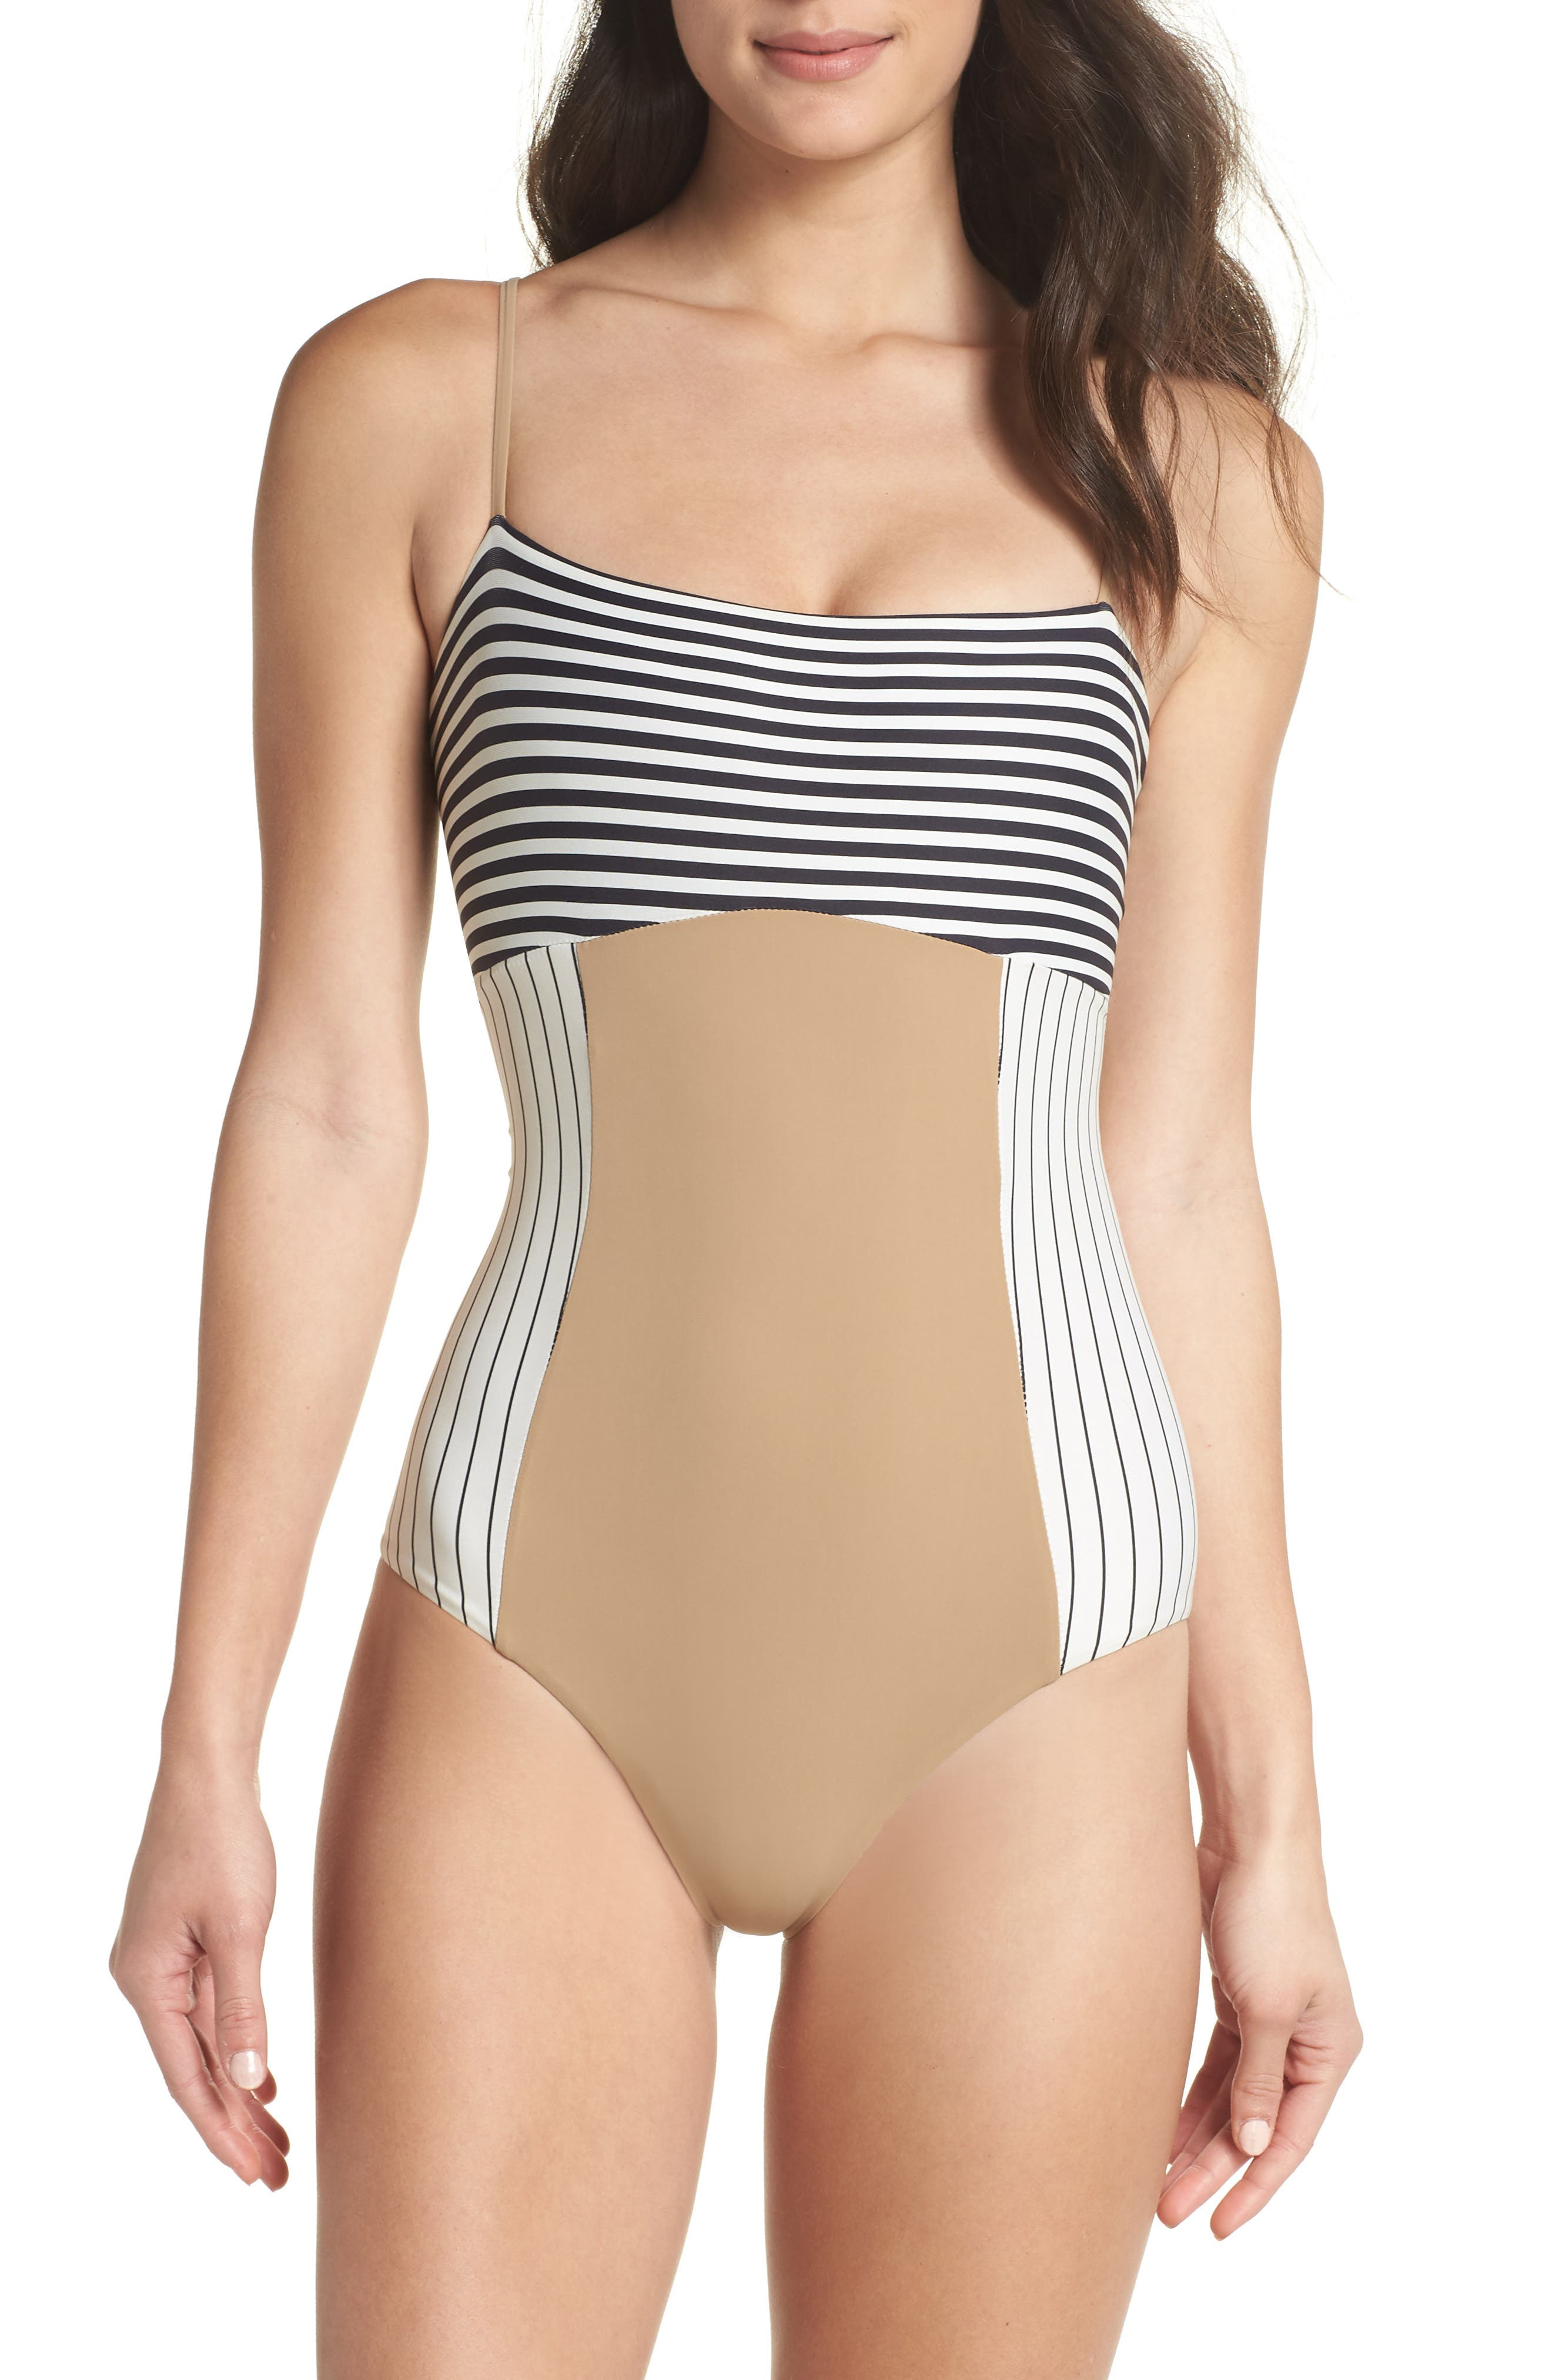 Finn One-Piece Swimsuit,                             Main thumbnail 1, color,                             Business Casual